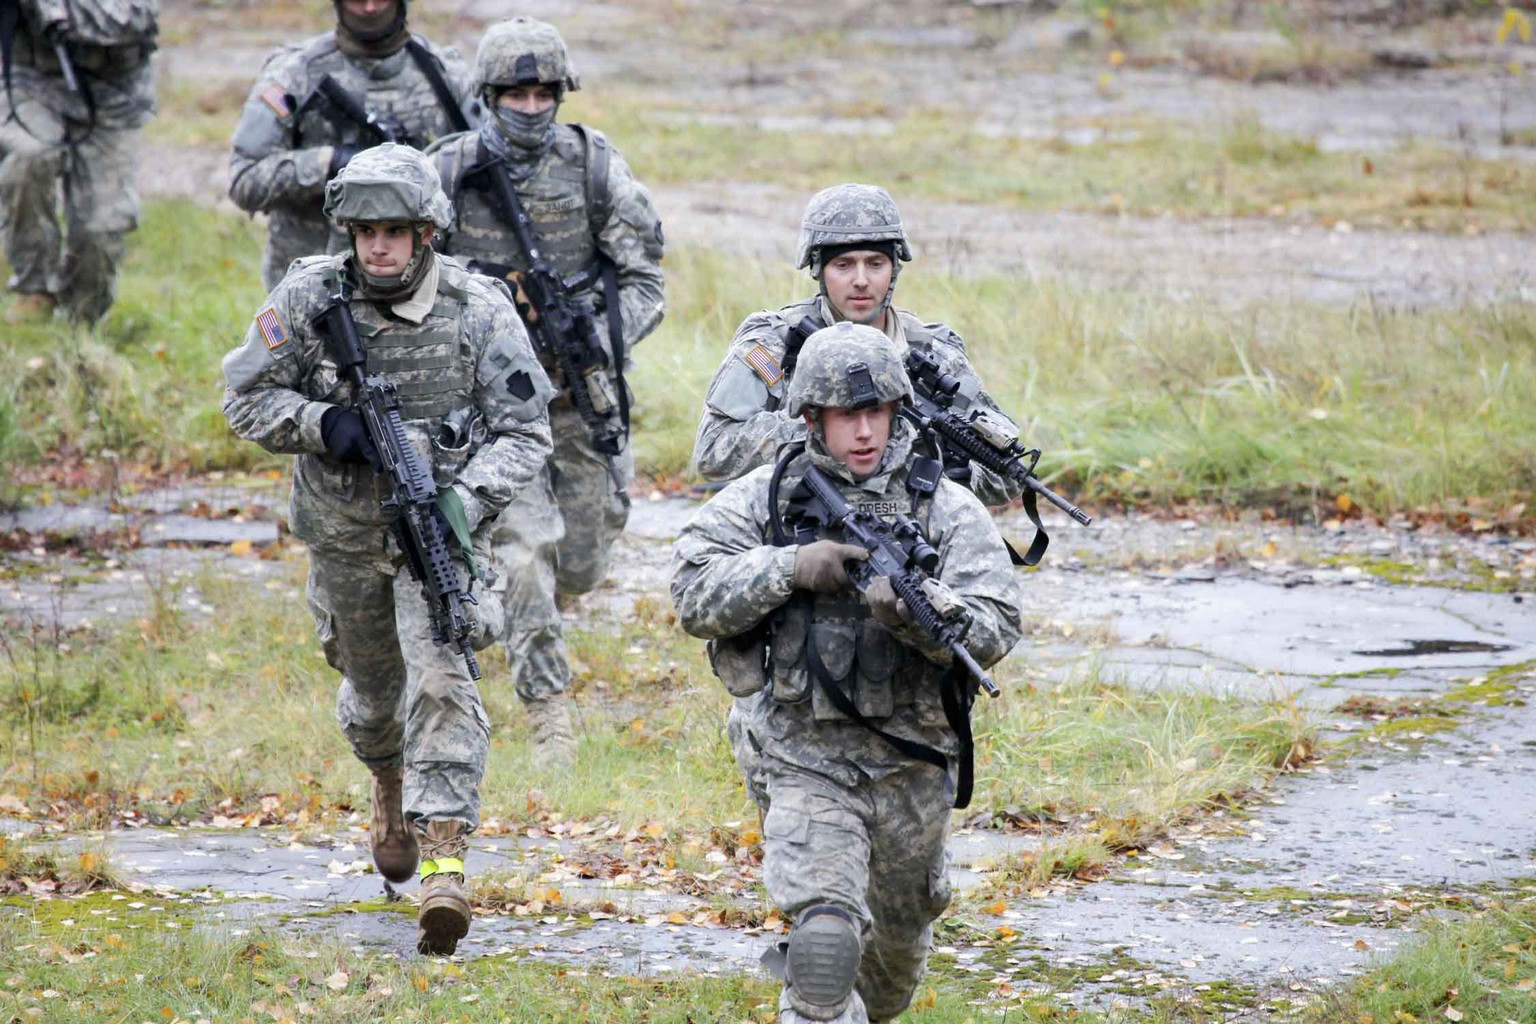 U.S. Army soldiers train during an exercise at the Adazi Training Area, Latvia October 20, 2010. The United States will send about 600 U.S. troops to Poland and the three Baltic states to take part in exercises in the coming days to reassure NATO allies following Russia's seizure of the Crimean region from Ukraine, the Pentagon said April 22, 2014. Picture taken October 20, 2010.  U.S. Army/Sgt. Stephen A. Gober/Handout via Reuters (LATVIA - Tags: MILITARY POLITICS) ATTENTION EDITORS - THIS PICTURE WAS PROVIDED BY A THIRD PARTY. REUTERS IS UNABLE TO INDEPENDENTLY VERIFY THE AUTHENTICITY, CONTENT, LOCATION OR DATE OF THIS IMAGE. FOR EDITORIAL USE ONLY. NOT FOR SALE FOR MARKETING OR ADVERTISING CAMPAIGNS. THIS PICTURE IS DISTRIBUTED EXACTLY AS RECEIVED BY REUTERS, AS A SERVICE TO CLIENTS